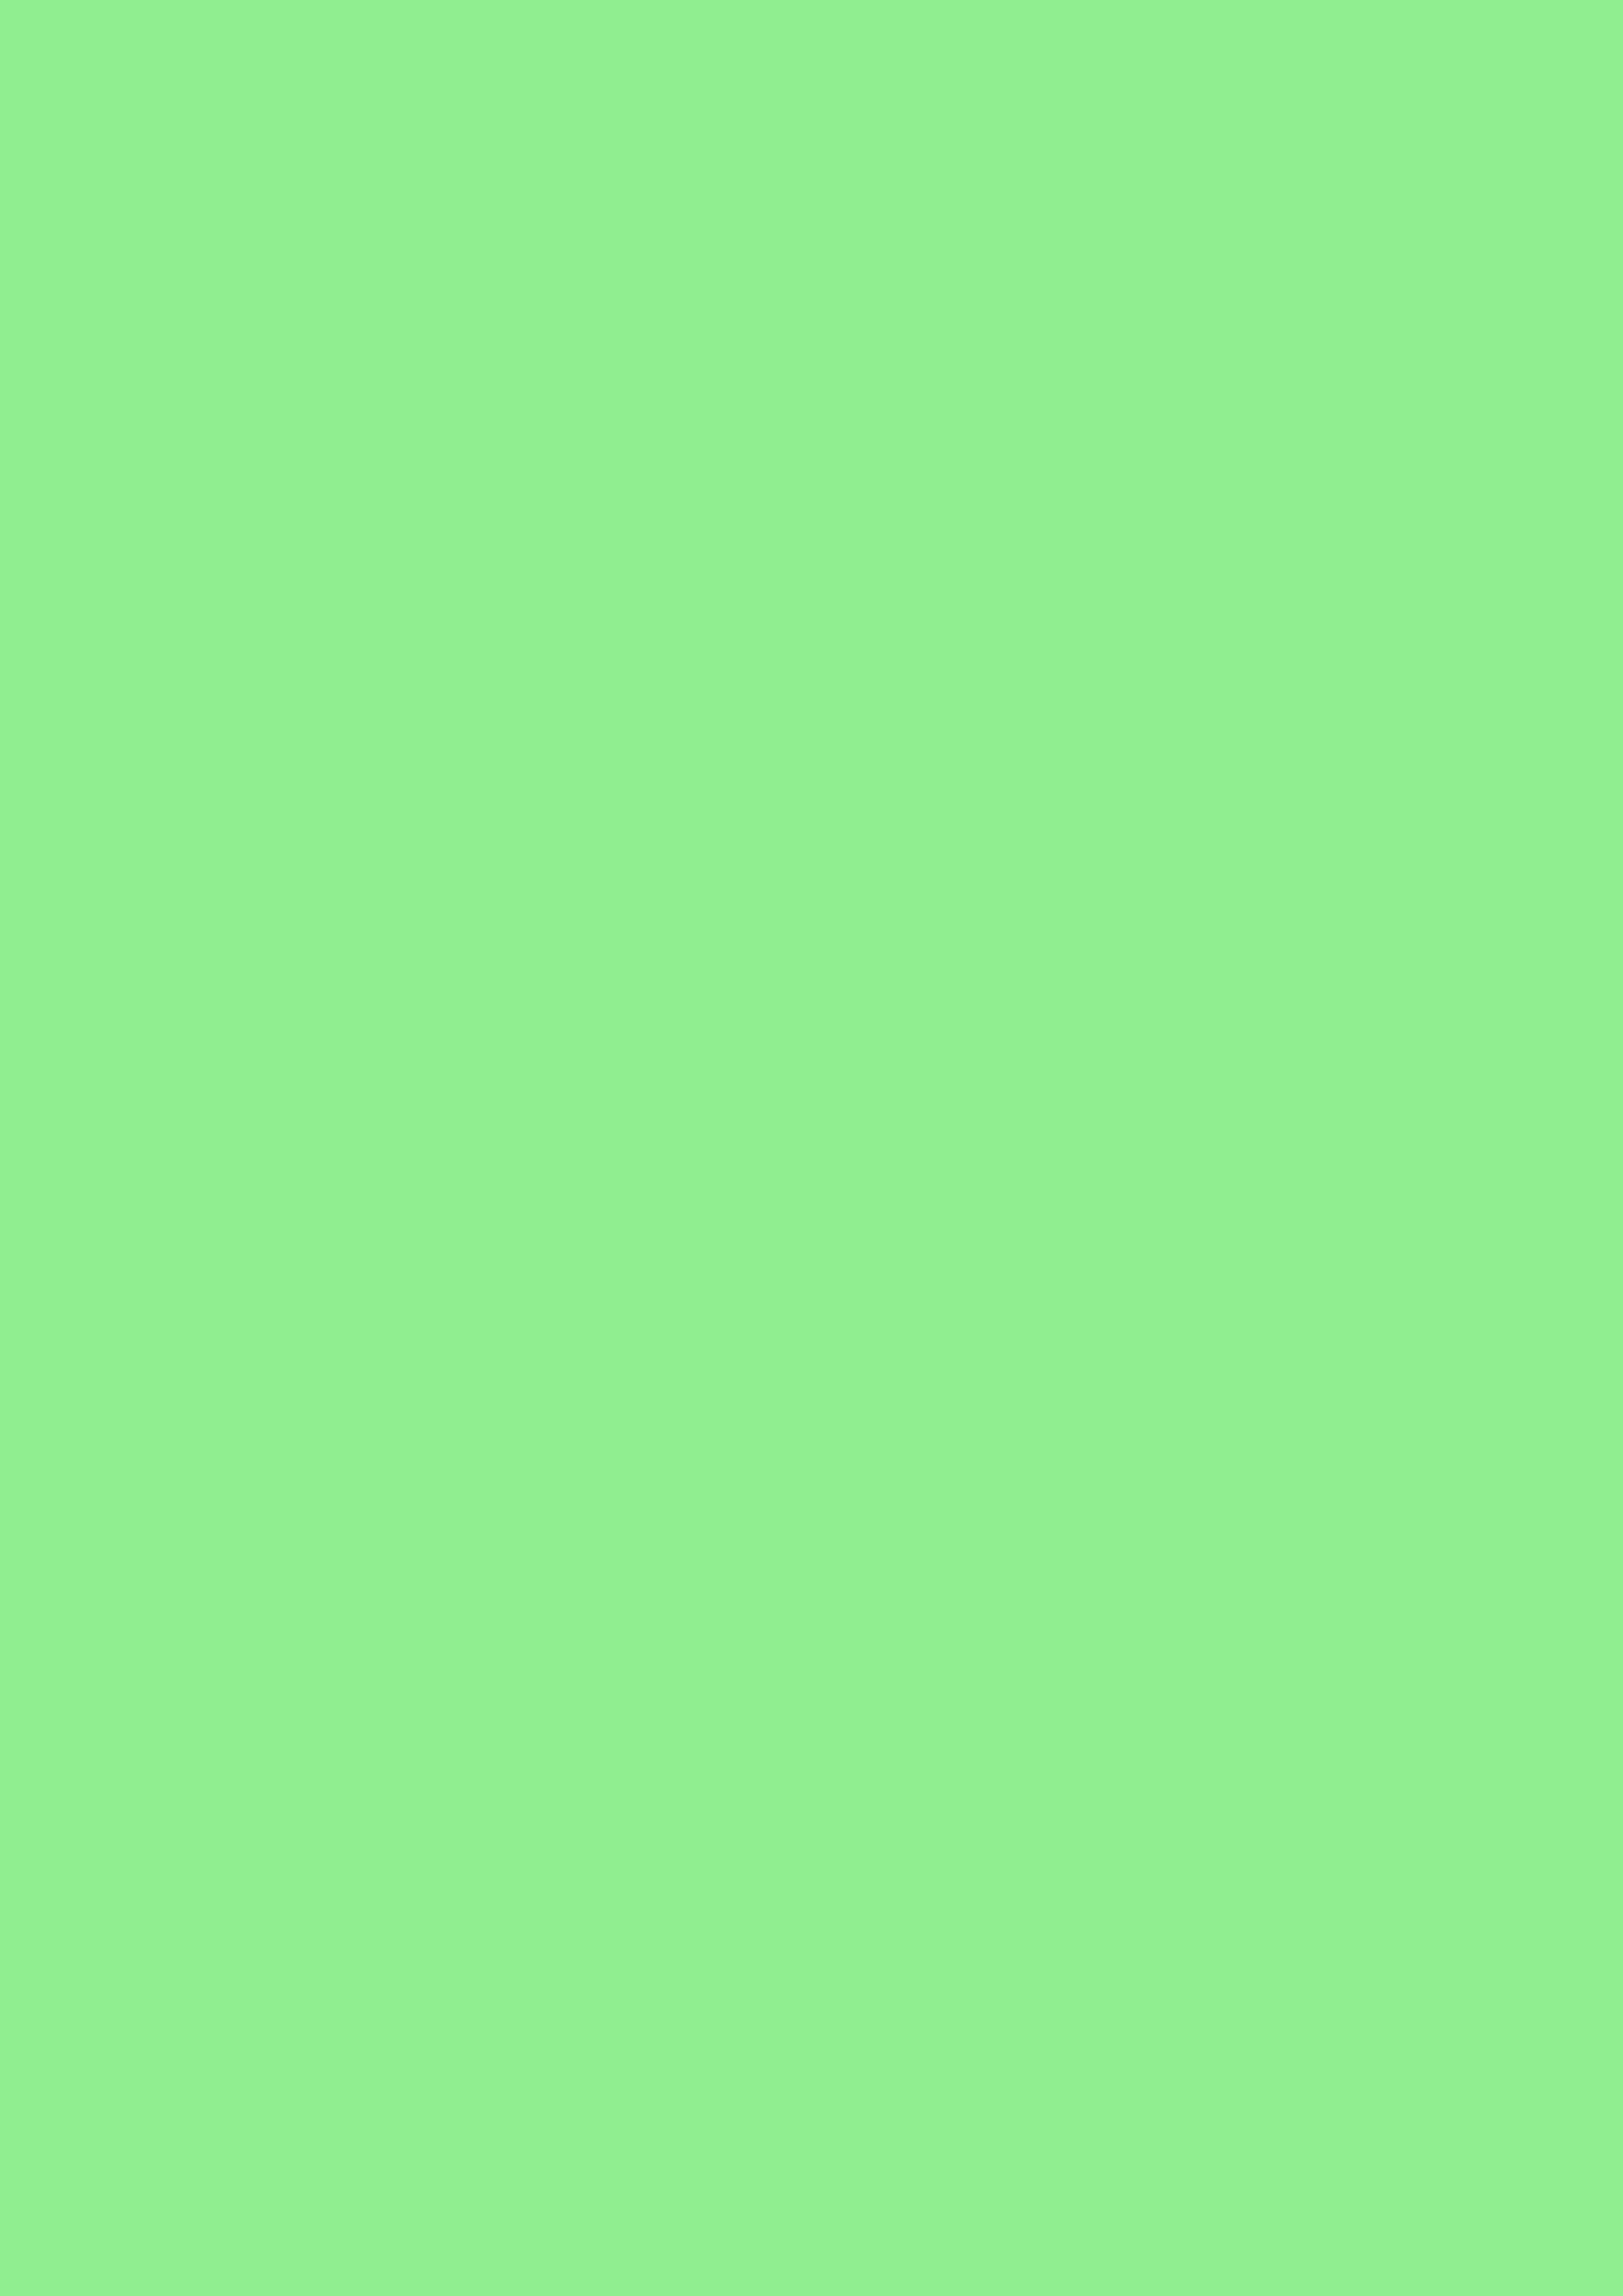 2480x3508 light green solid color background